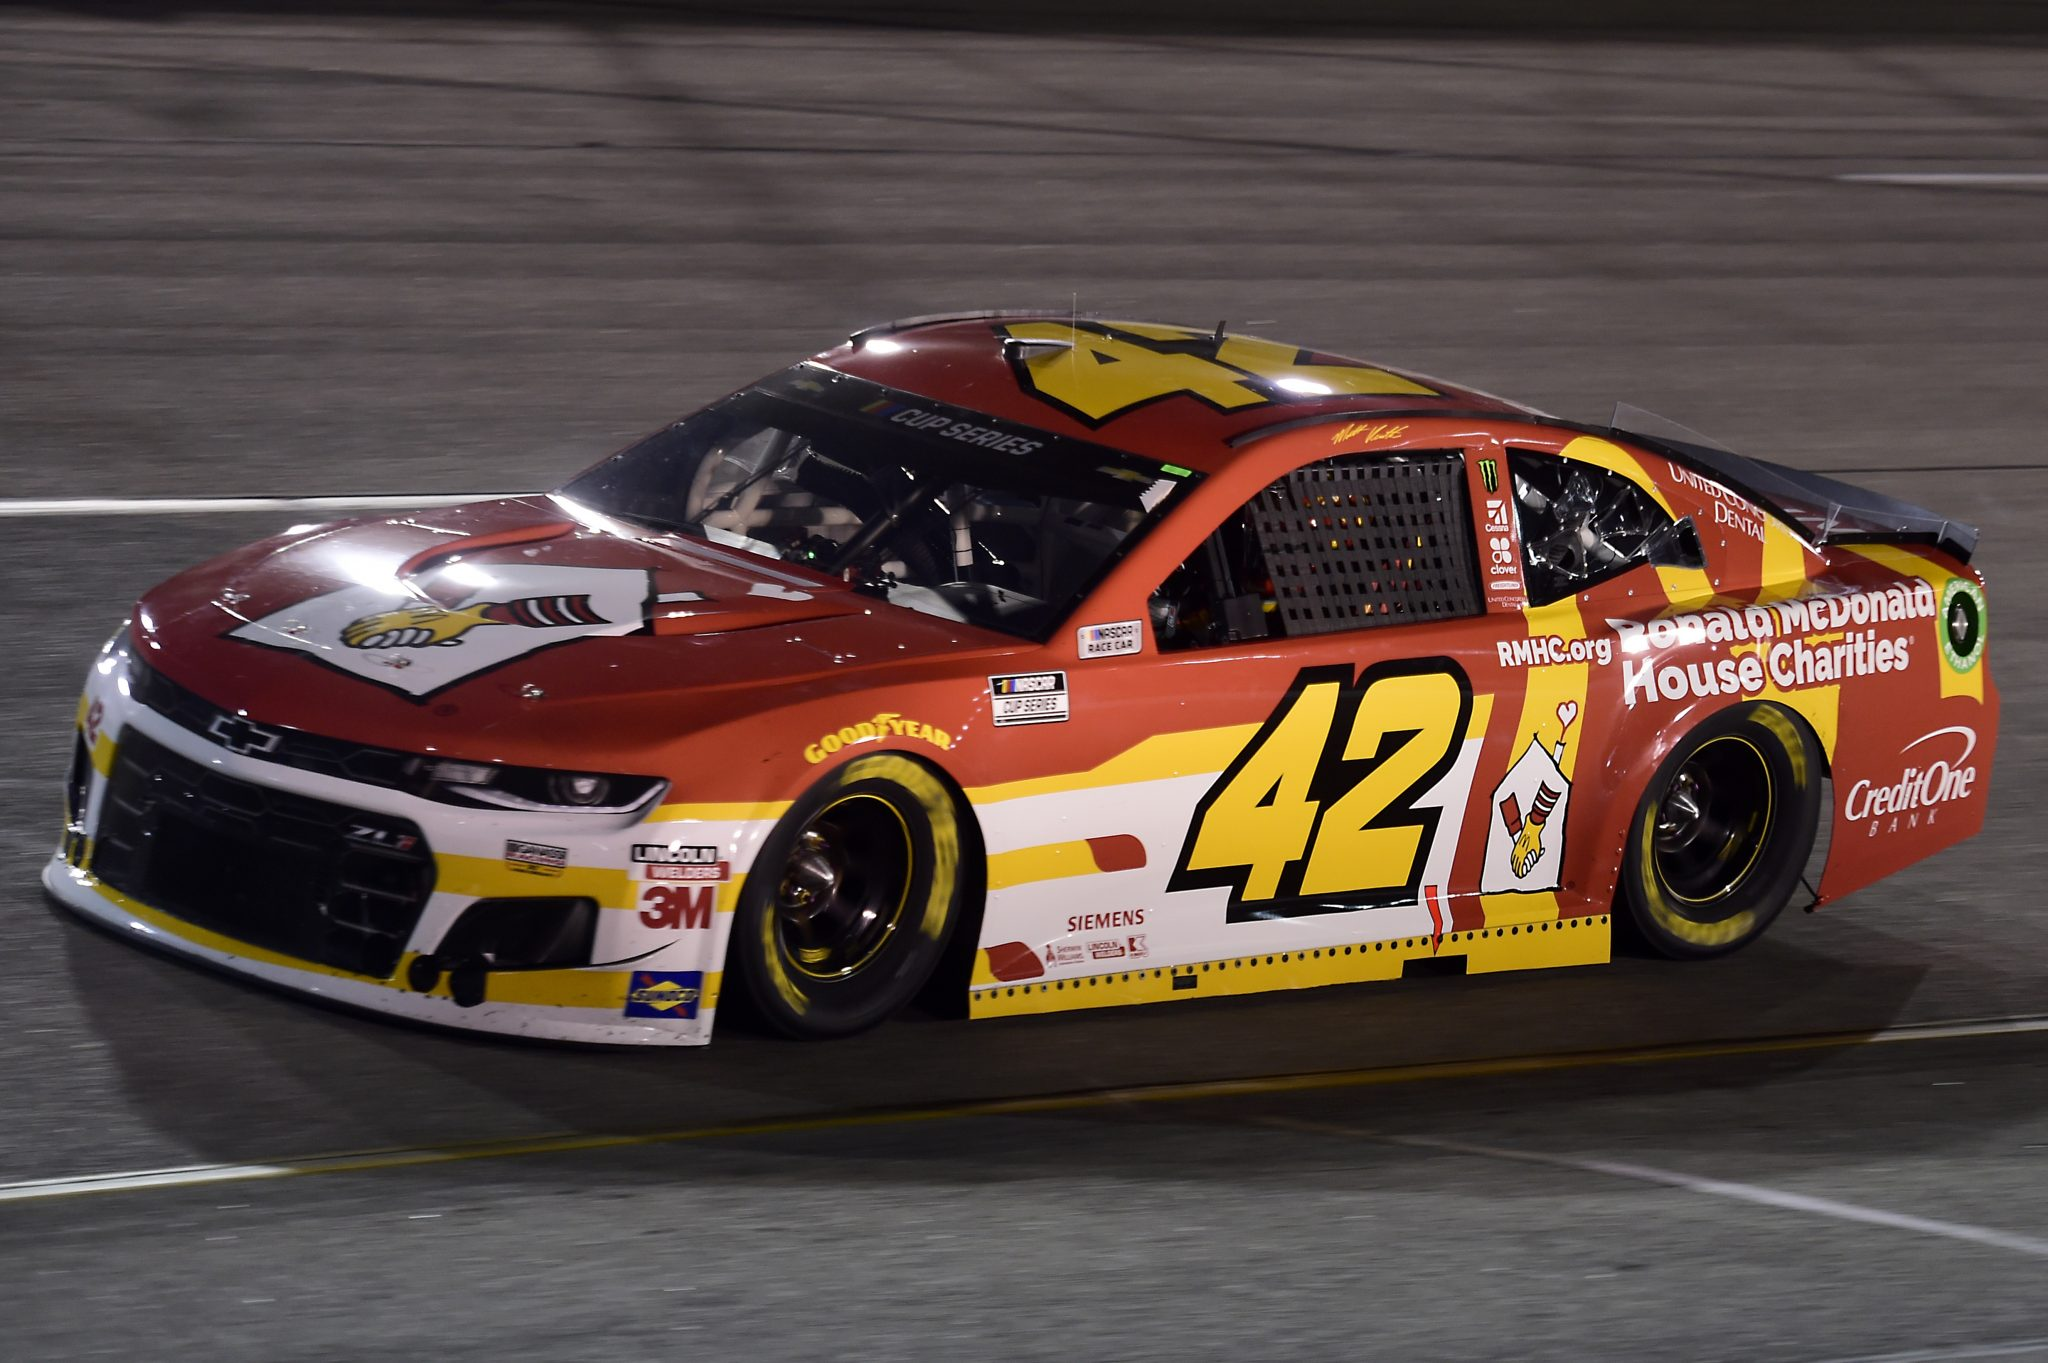 RICHMOND, VIRGINIA - SEPTEMBER 12: Matt Kenseth, driver of the #42 McDonald's Chevrolet, drives during the NASCAR Cup Series Federated Auto Parts 400 at Richmond Raceway on September 12, 2020 in Richmond, Virginia. (Photo by Jared C. Tilton/Getty Images) | Getty Images